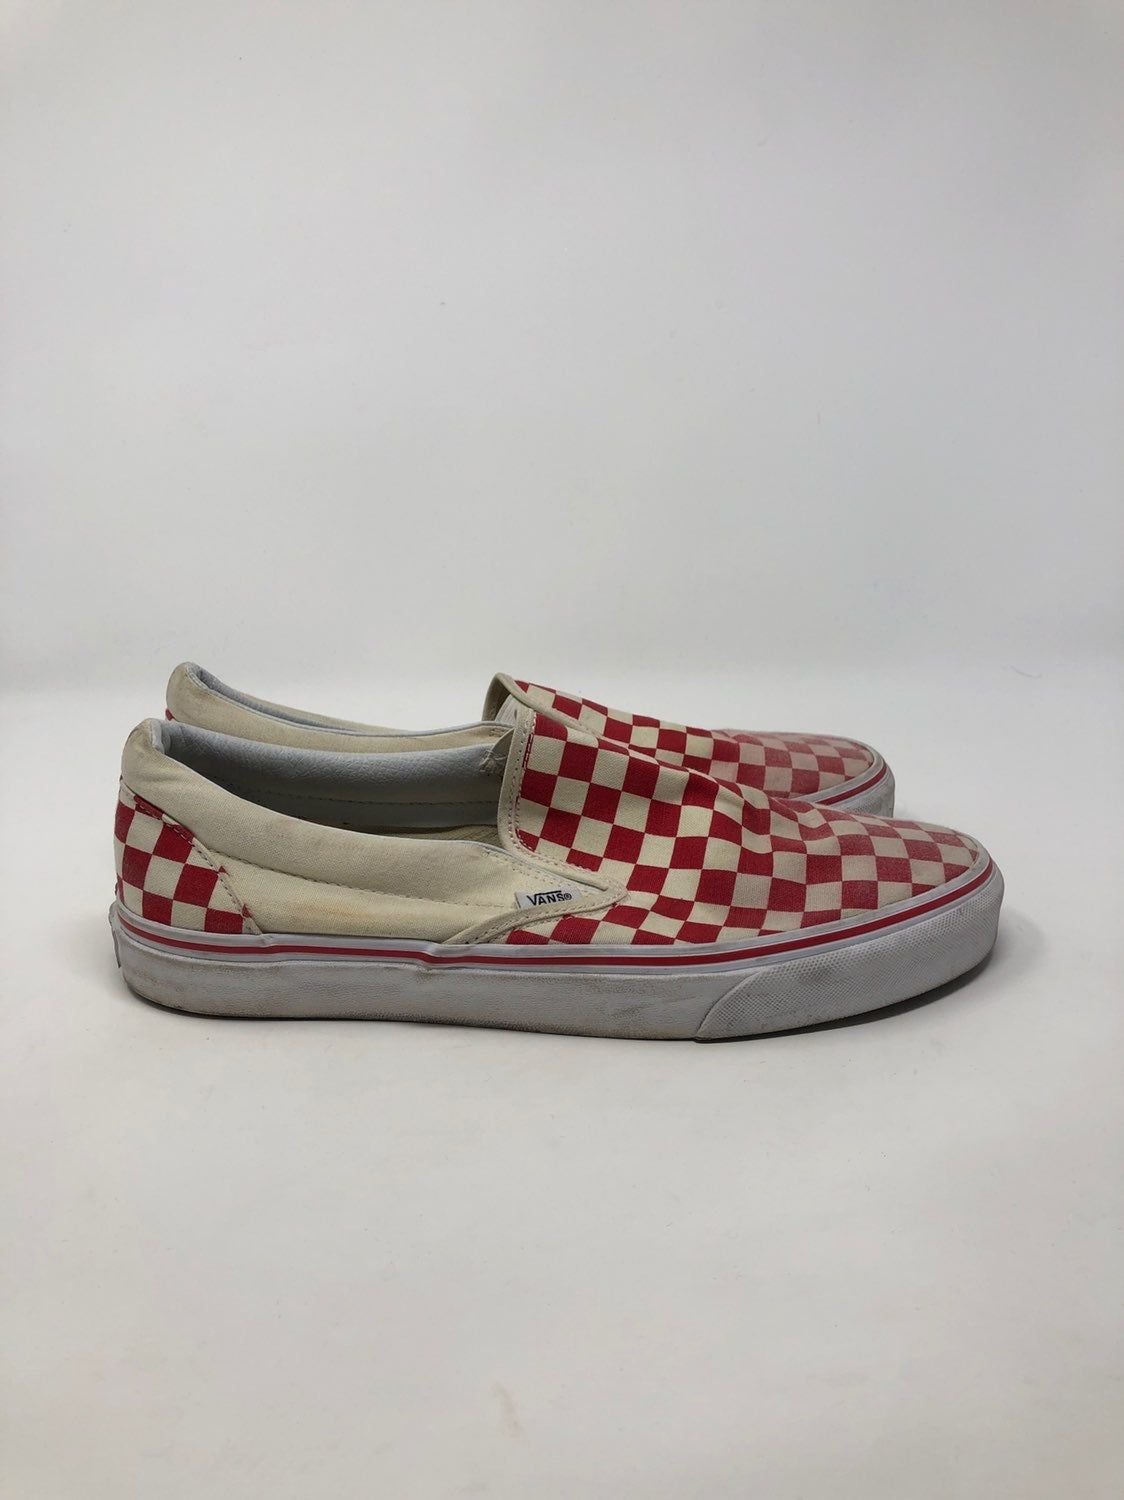 Vans Checkered Slip On. Men's 11. Worn but still has plenty